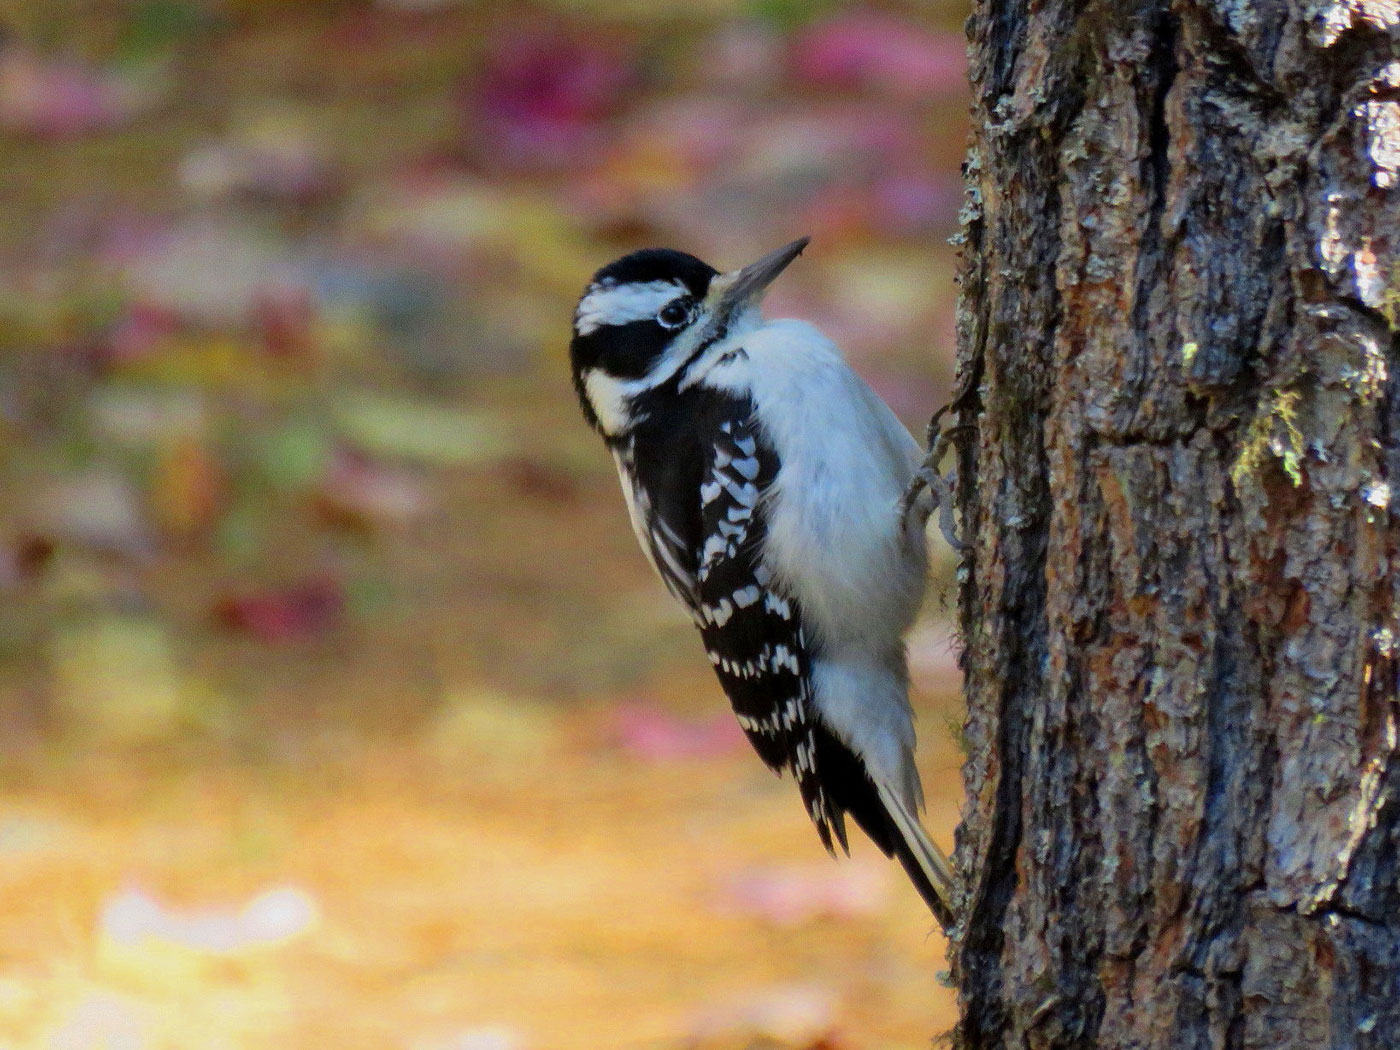 Juvenile Hairy Woodpecker in Sebec, Maine